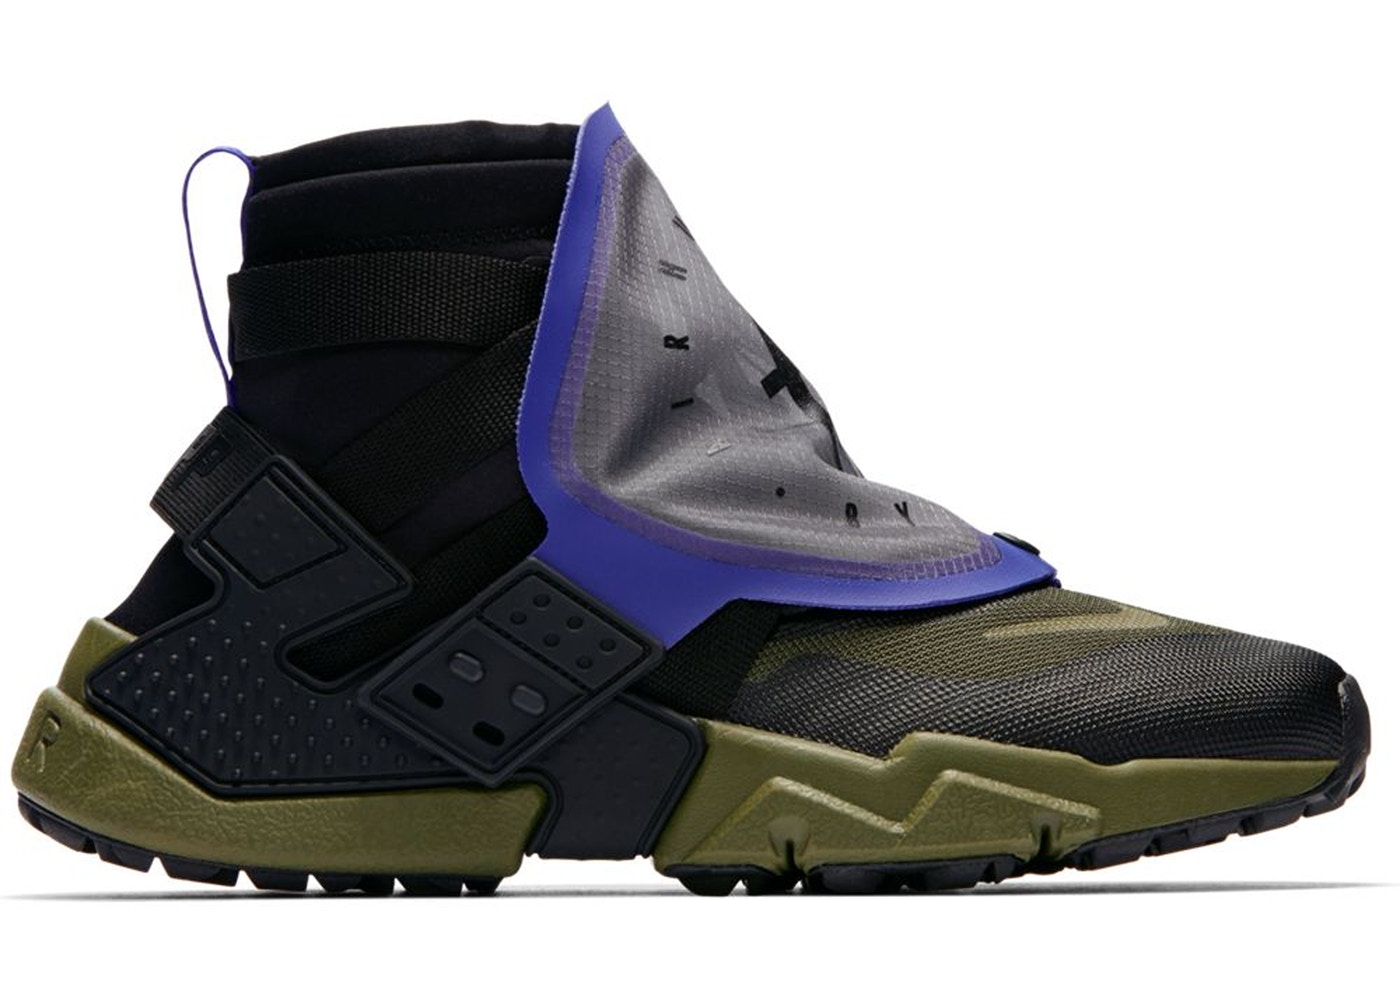 7f3df152e6c89 Air Huarache Gripp Black Olive Canvas - AT0298-001